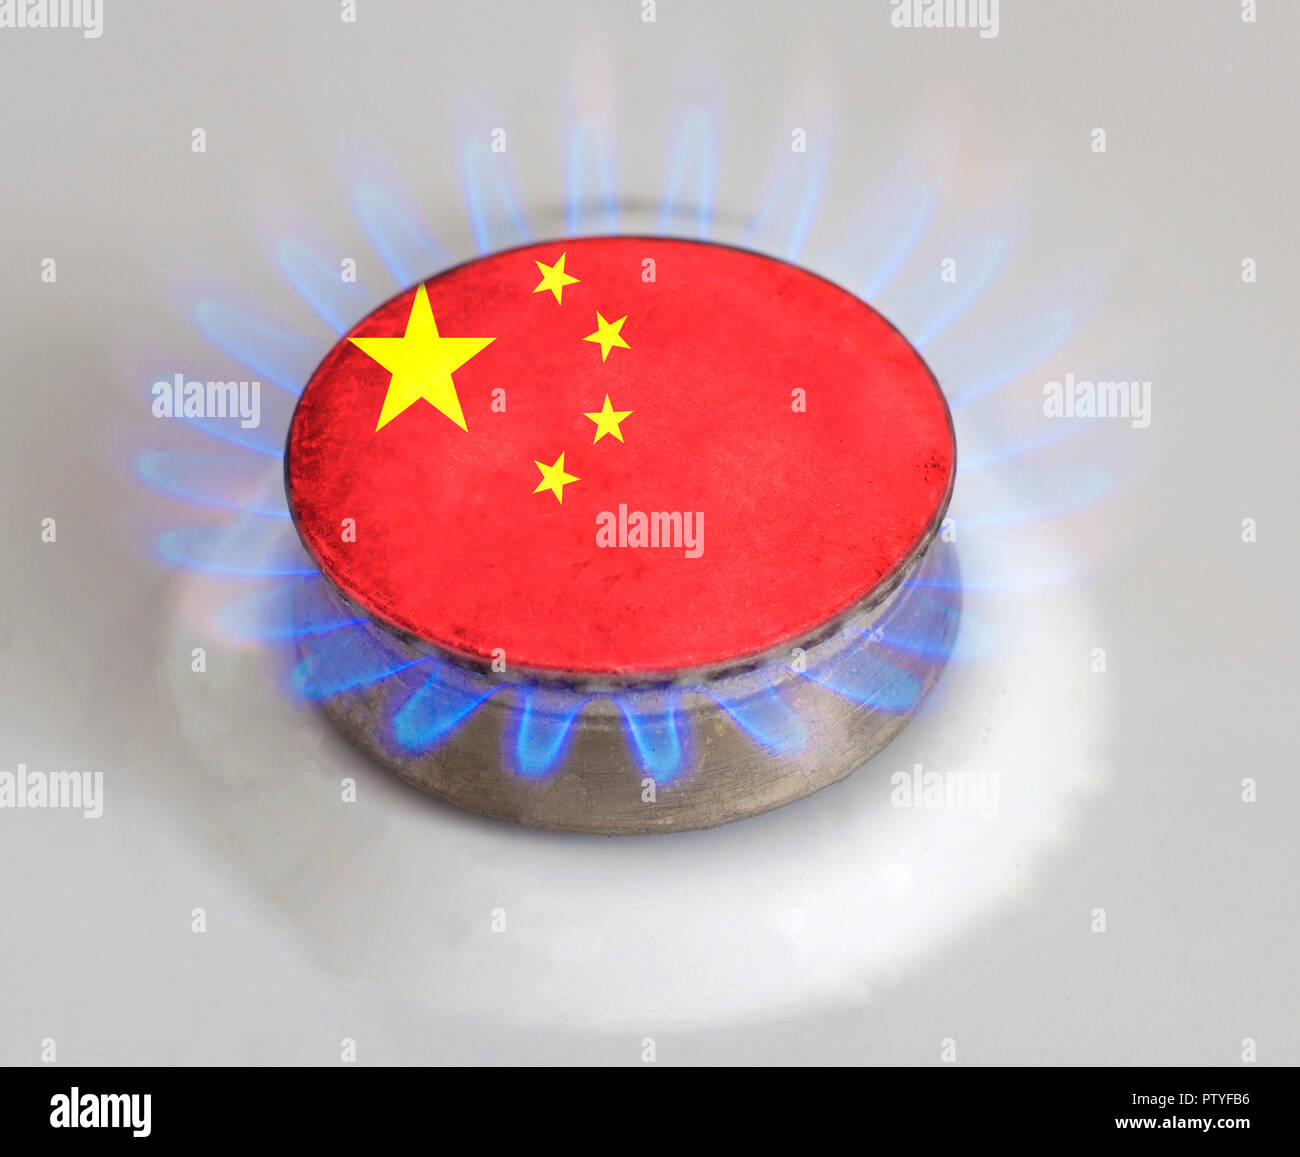 Gas burner with the flag of China. Gas of China - Stock Image